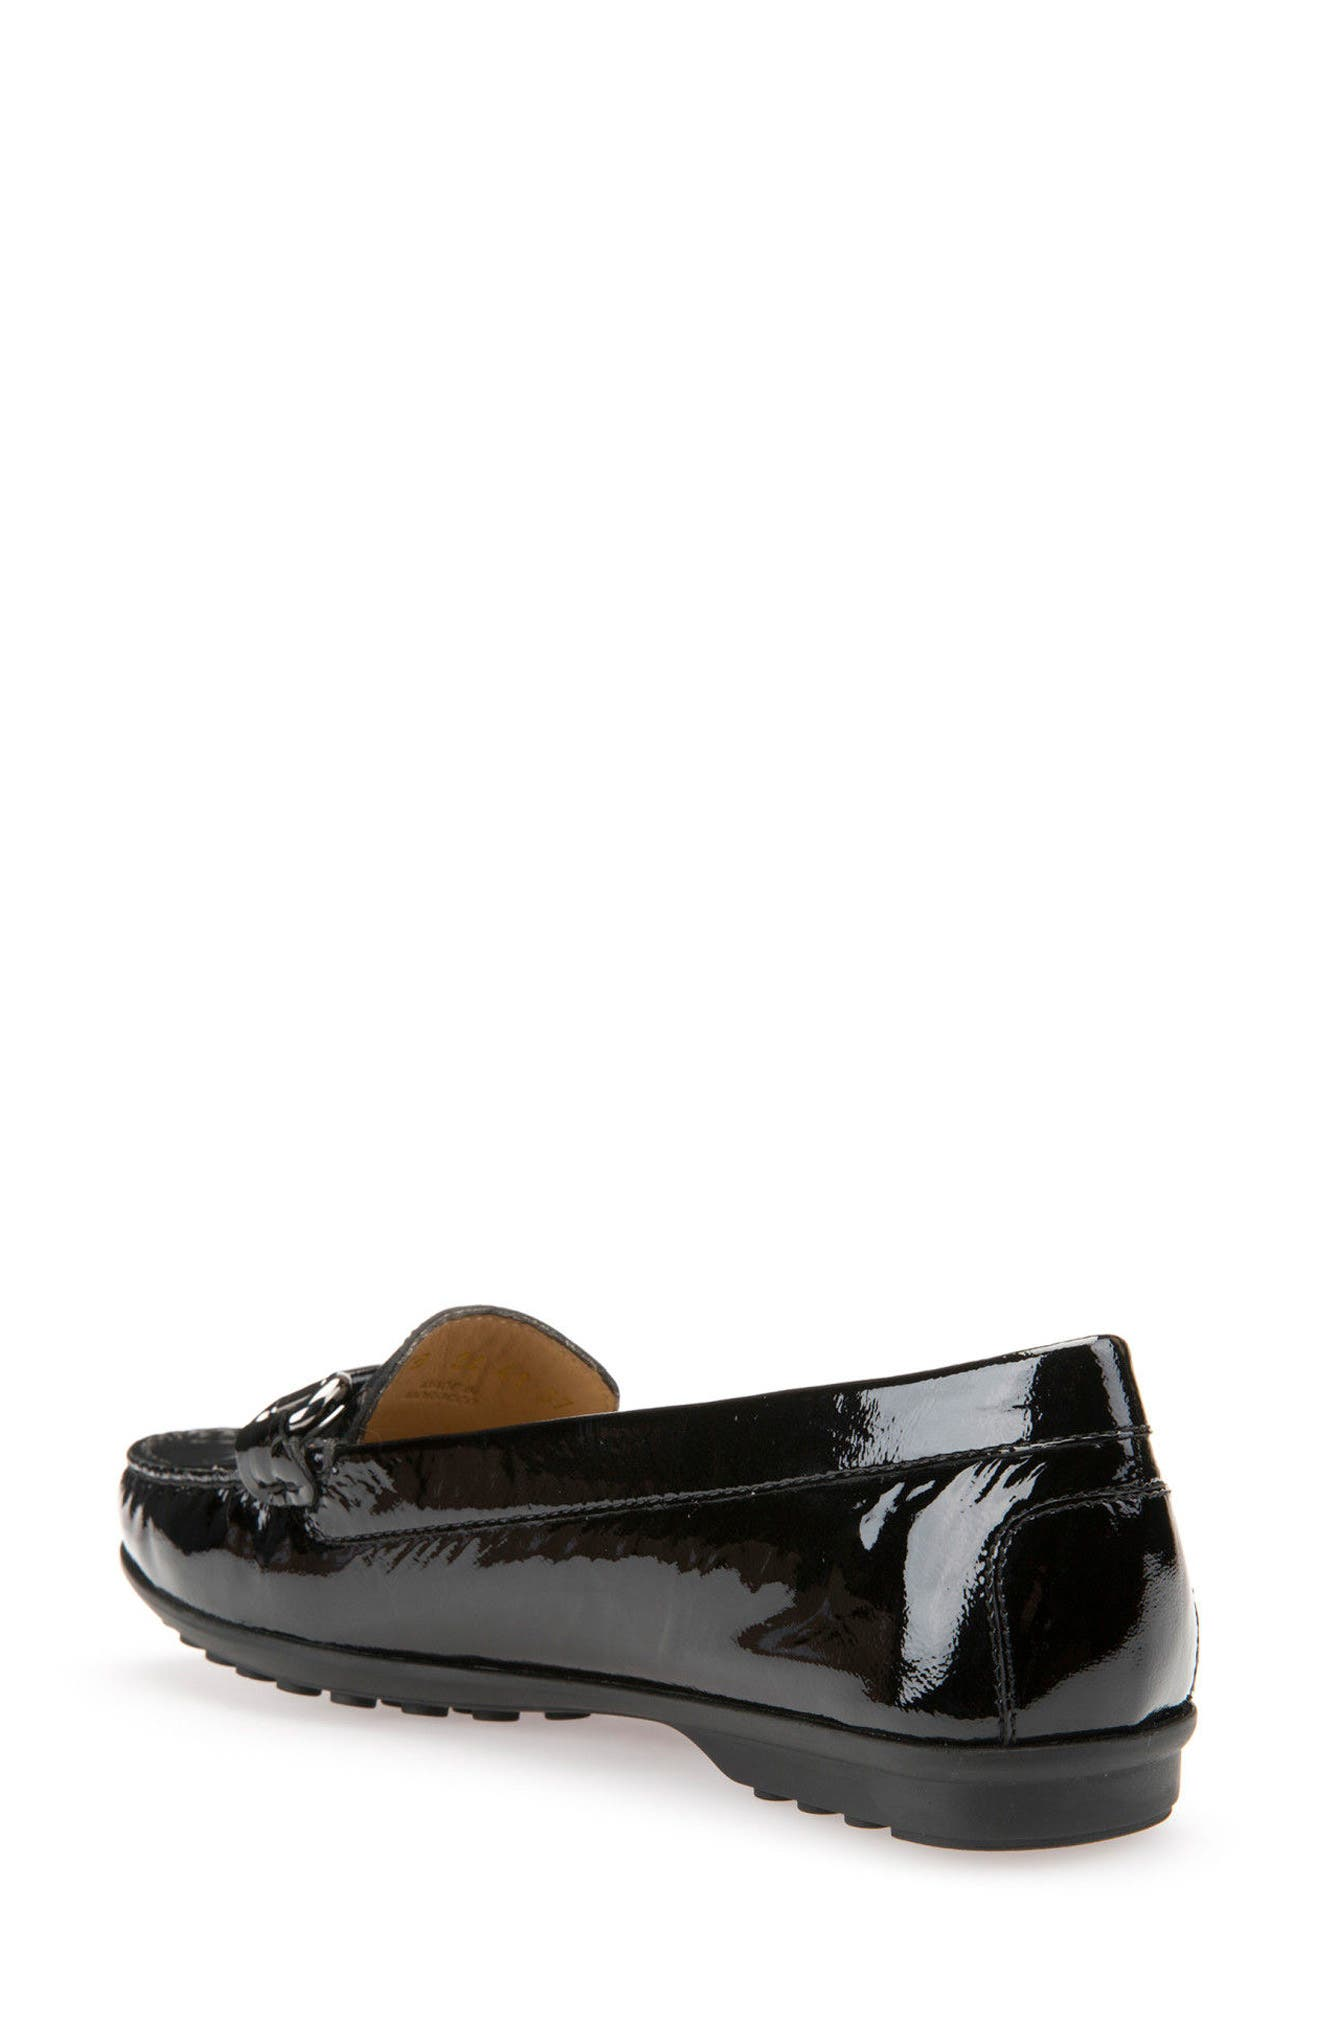 Alternate Image 2  - Geox Elidia Bit Water Resistant Loafer (Women)